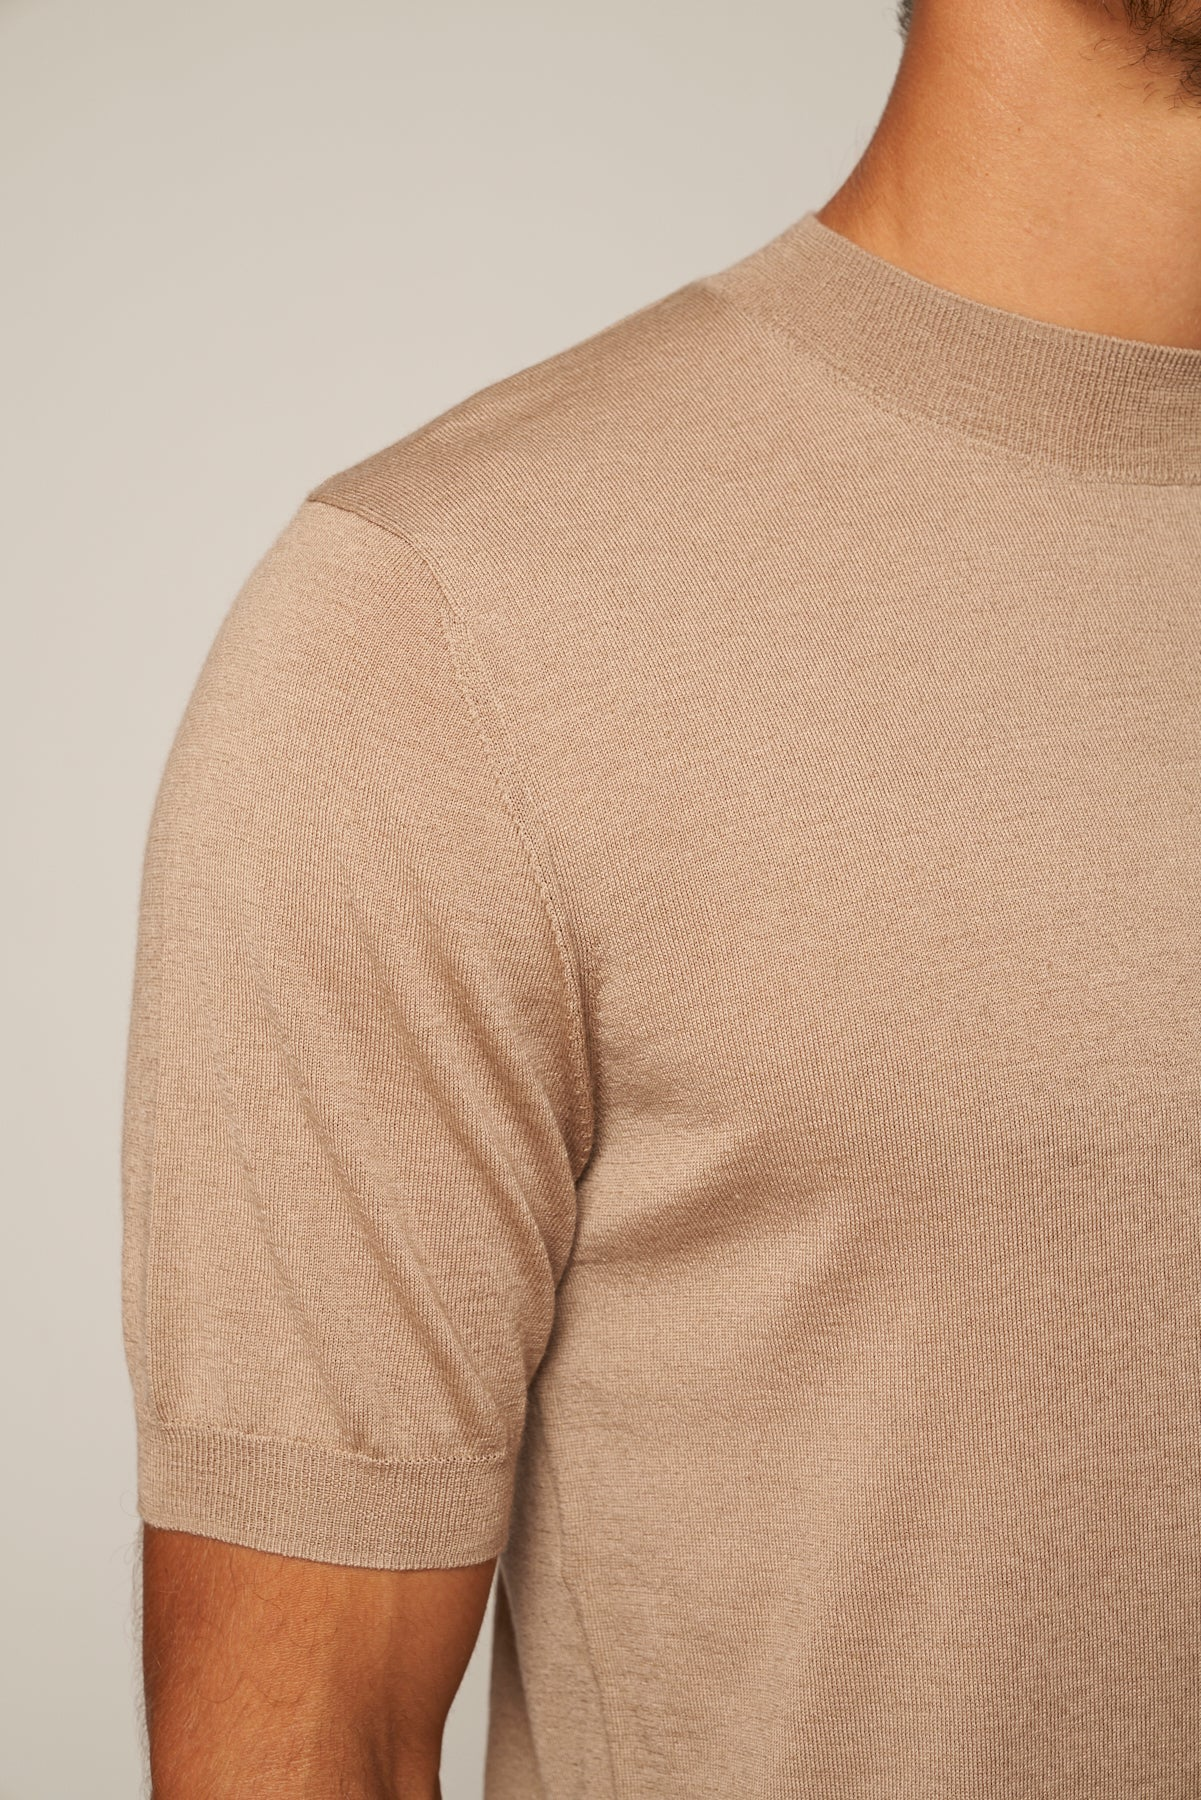 Worsted Cashmere High Neck Short Sleeve Tee